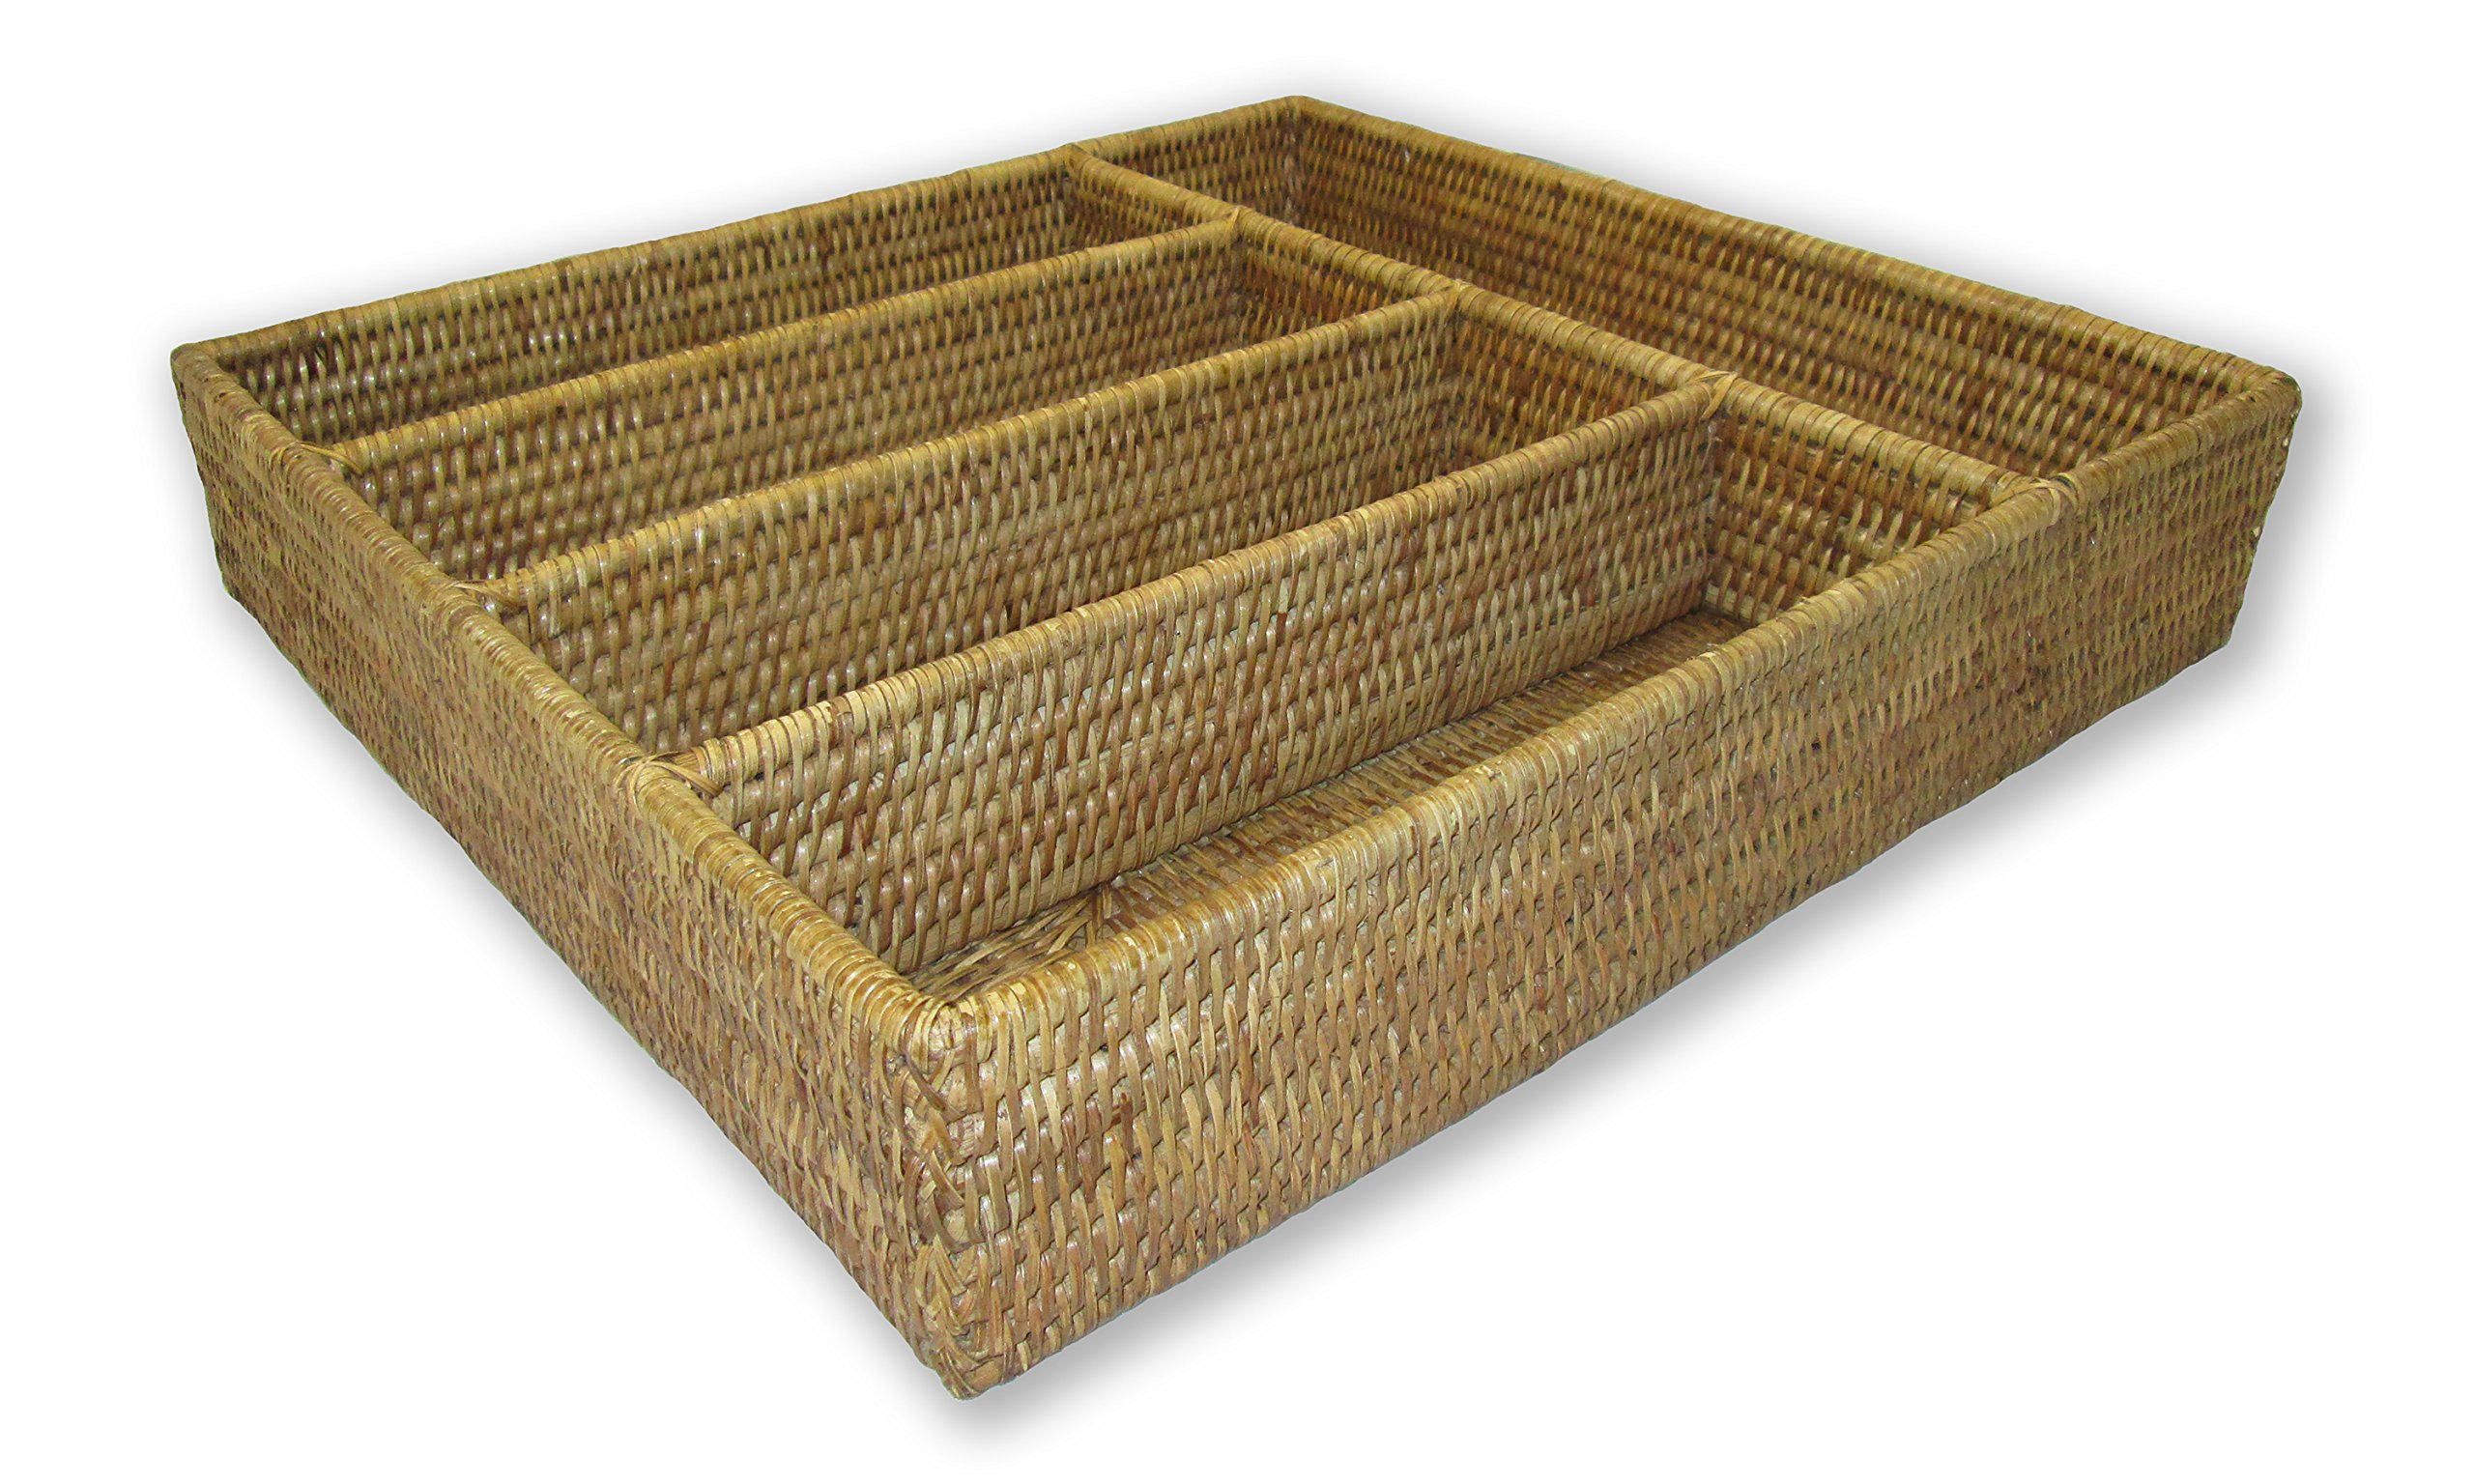 Artifacts Trading Company Rattan 5 Section Cutlery Tray, 16'' L x 15'' W x 3'' H by Artifacts Trading Company (Image #1)